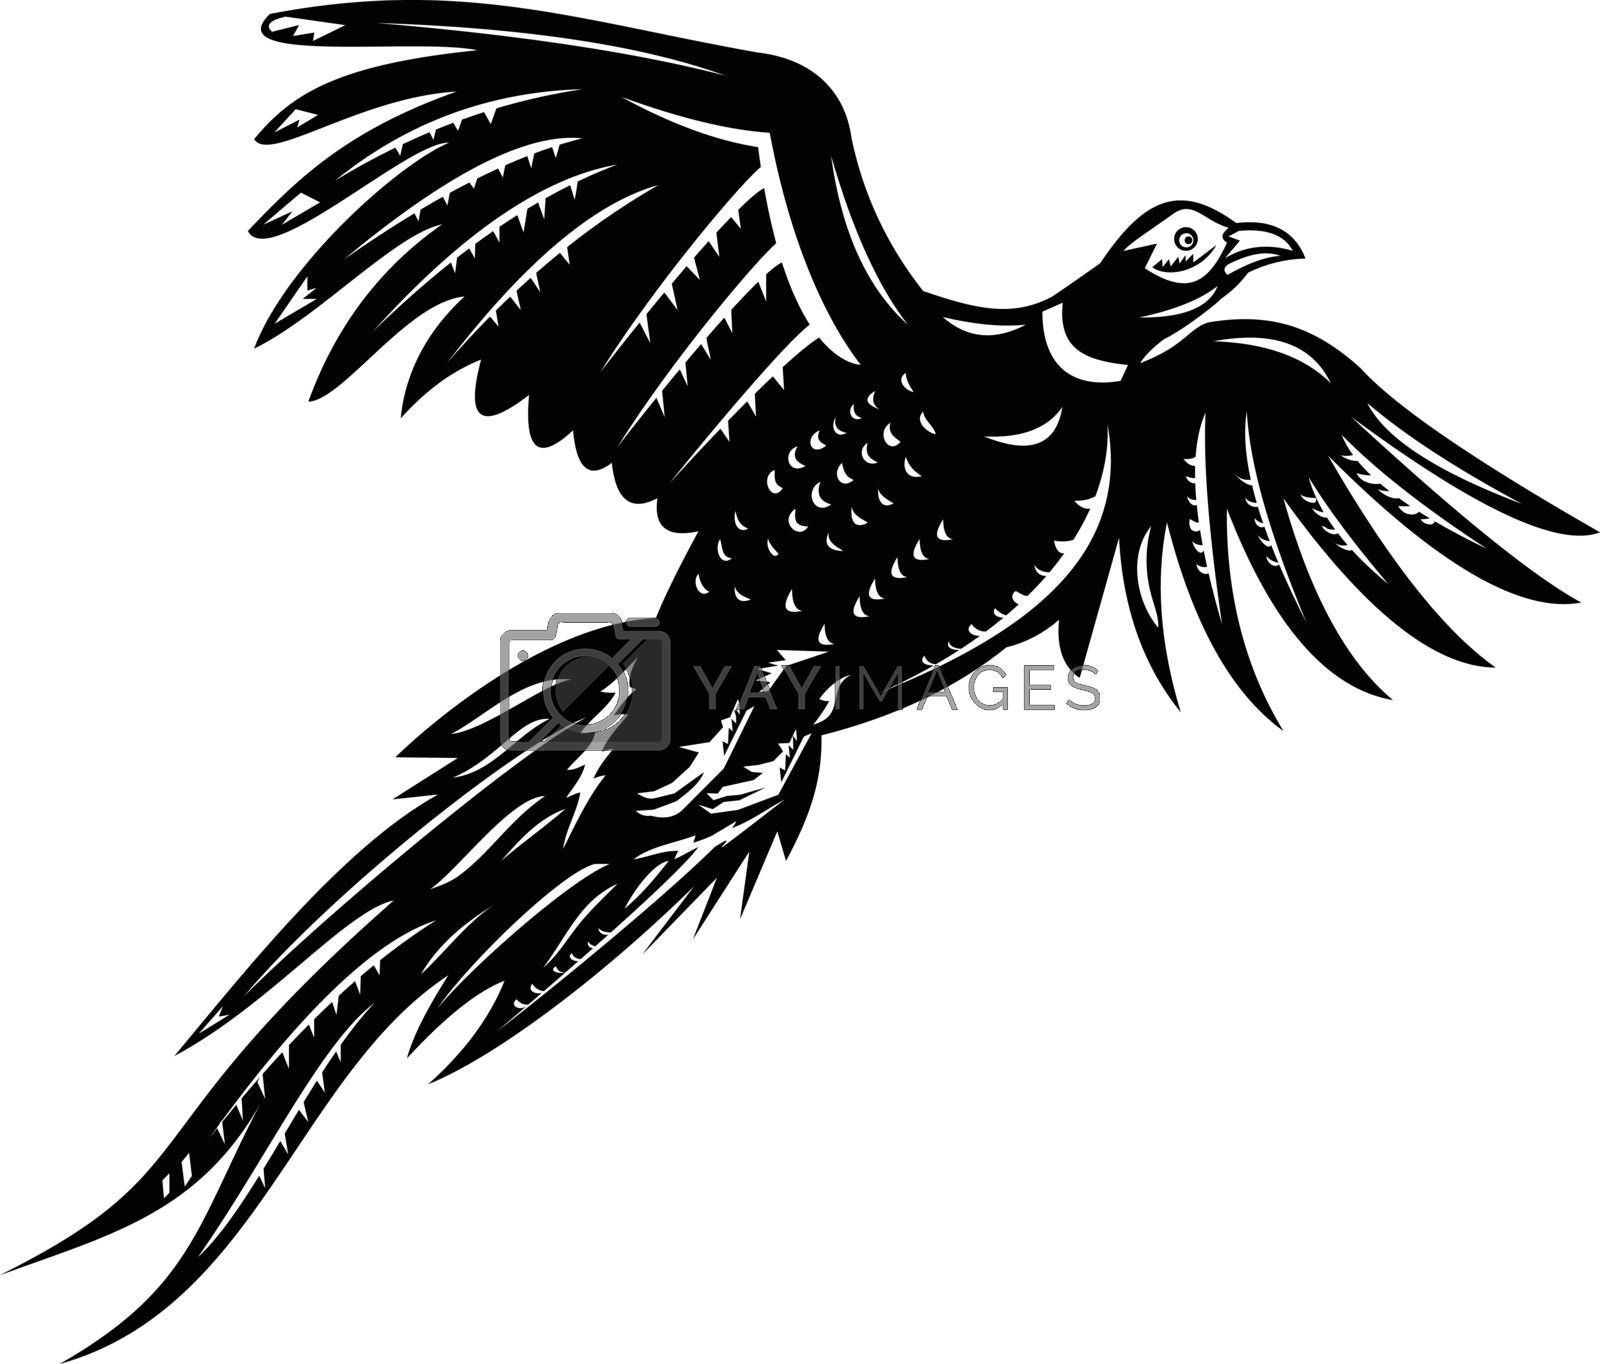 Retro style illustration of a ring-necked pheasant or common pheasant, a game bird flying viewed from low angle on isolated background done in black and white style.